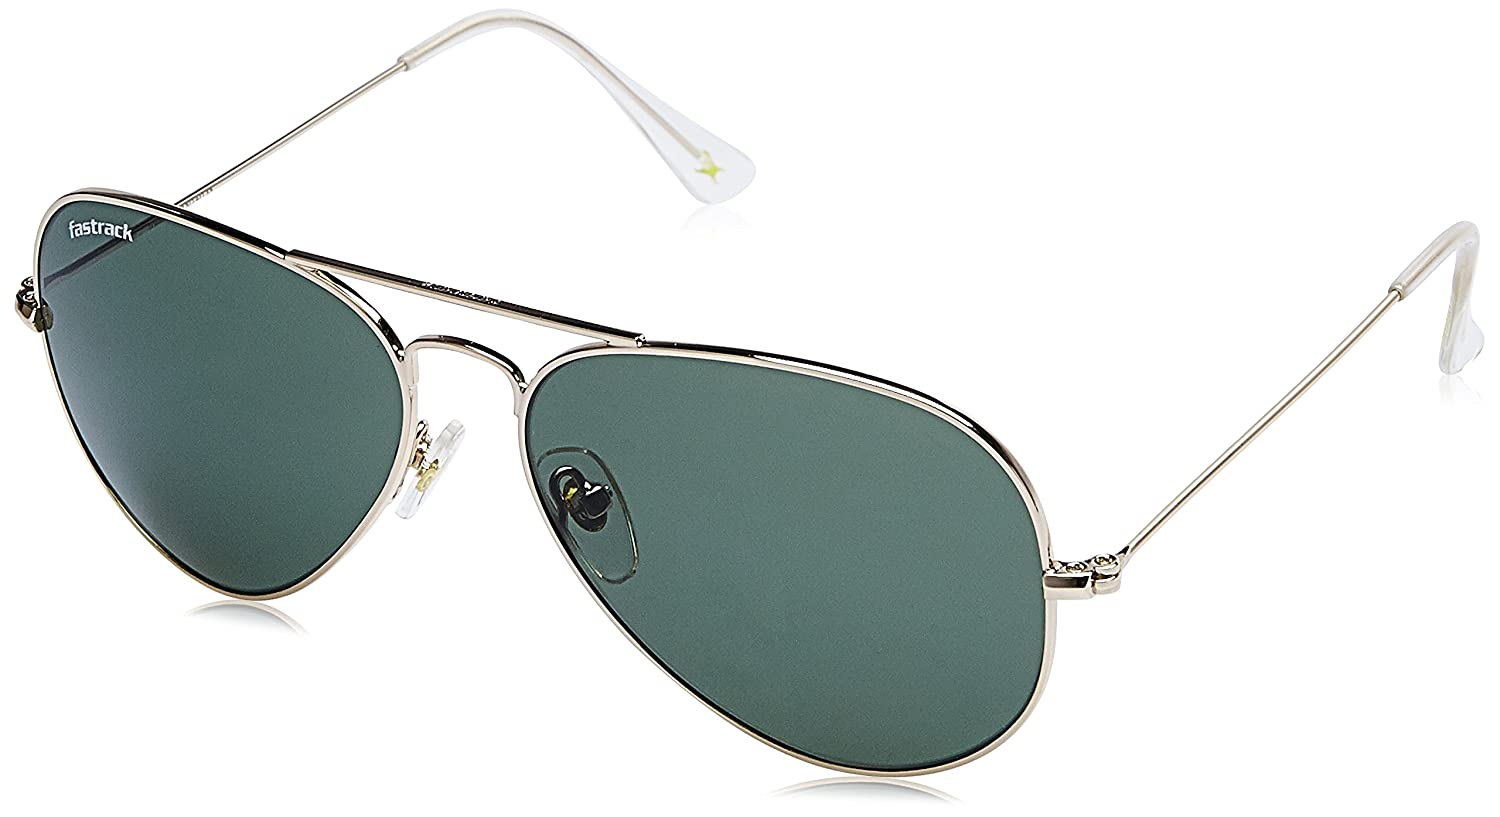 772b44e63f Fastrack UV Protected Aviator Men s Sunglasses - (M165GR17G